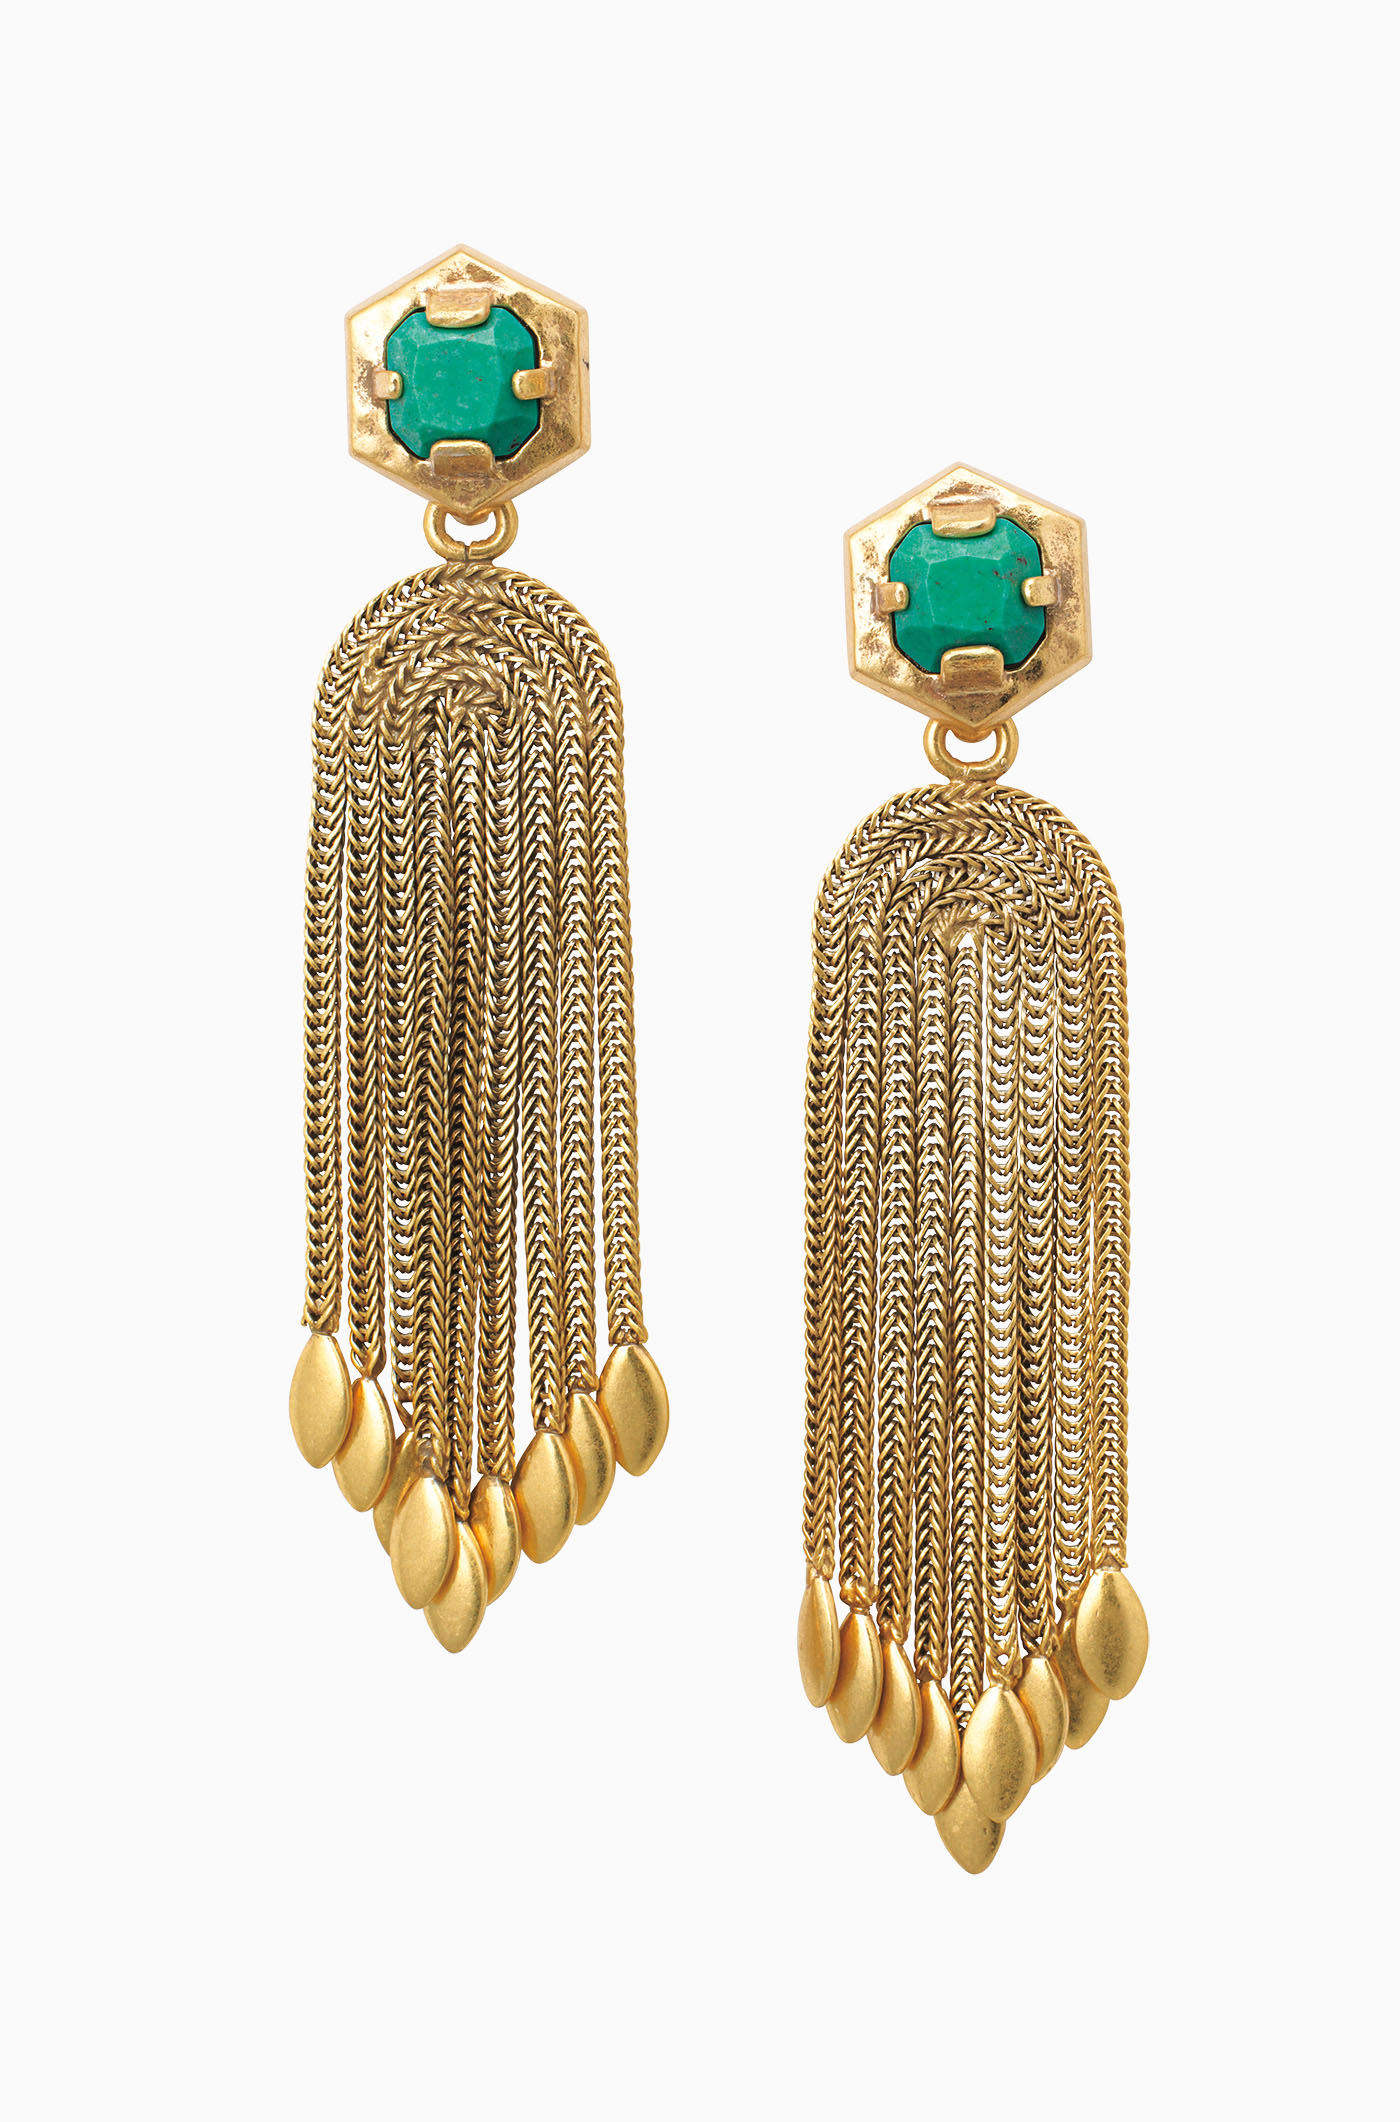 - Vintage Gold Chandelier Earrings - Odeon Chandeliers Stella & Dot